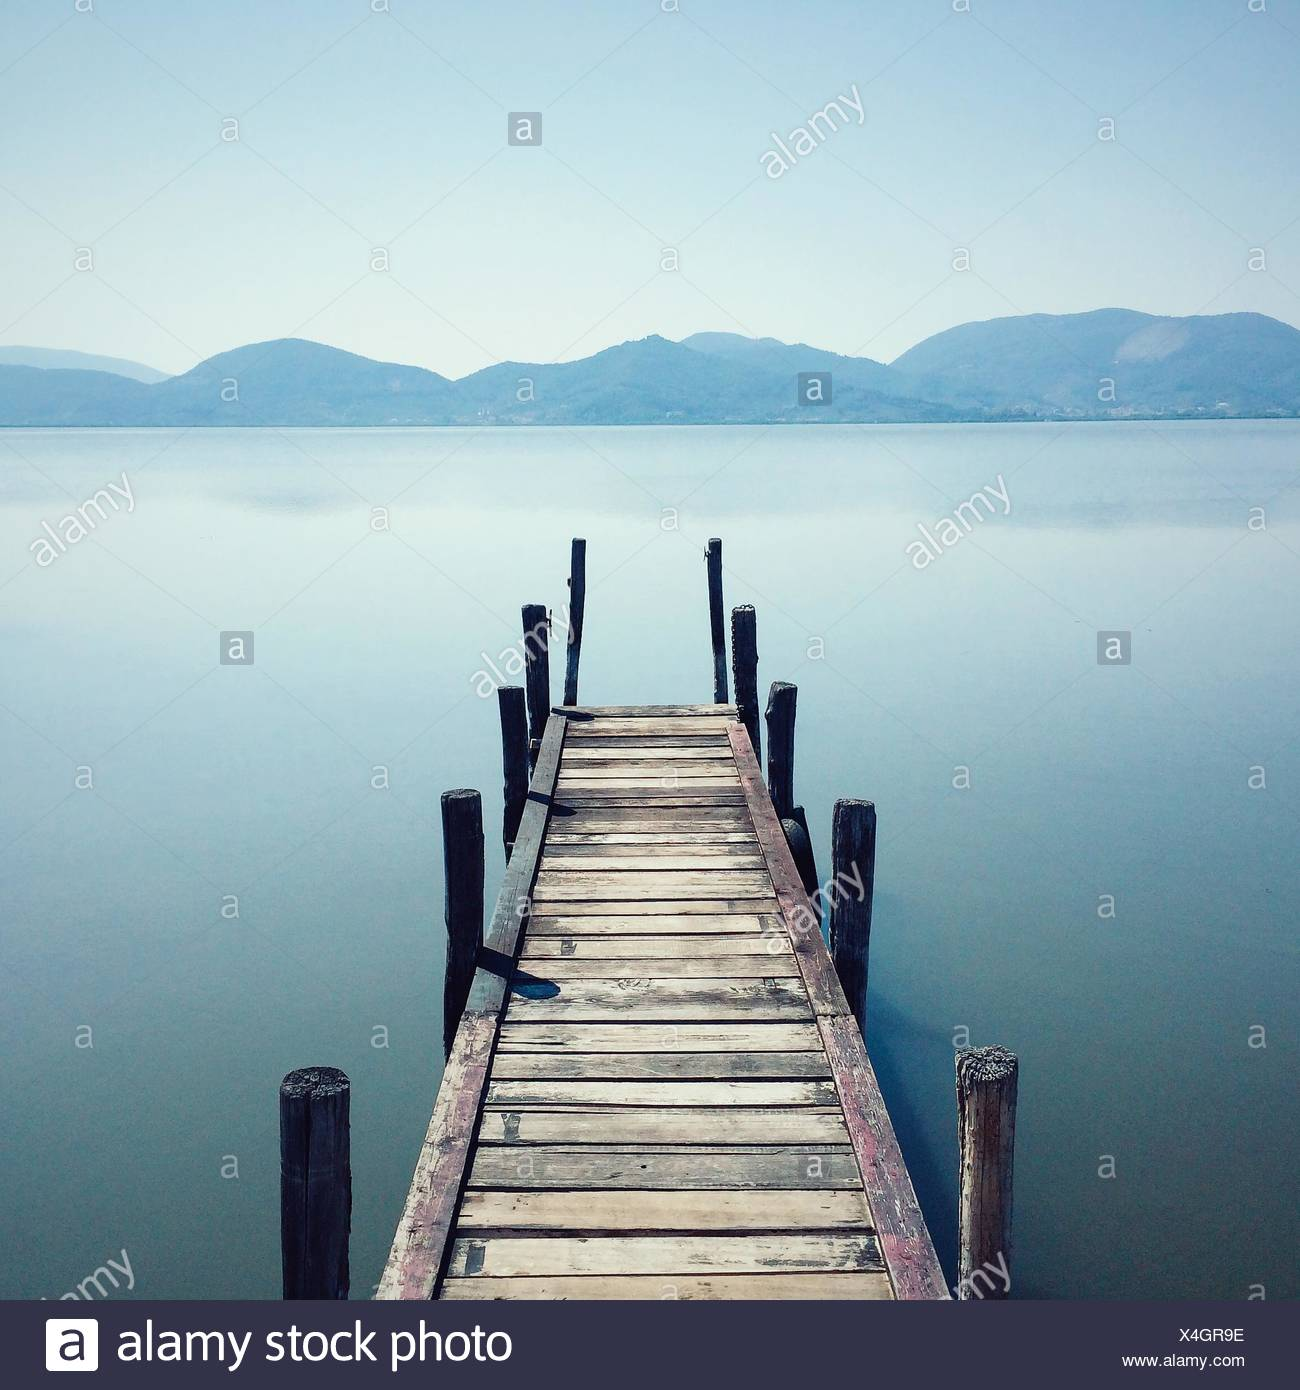 High Angle View Of Boardwalk Over River Against Clear Sky - Stock Image